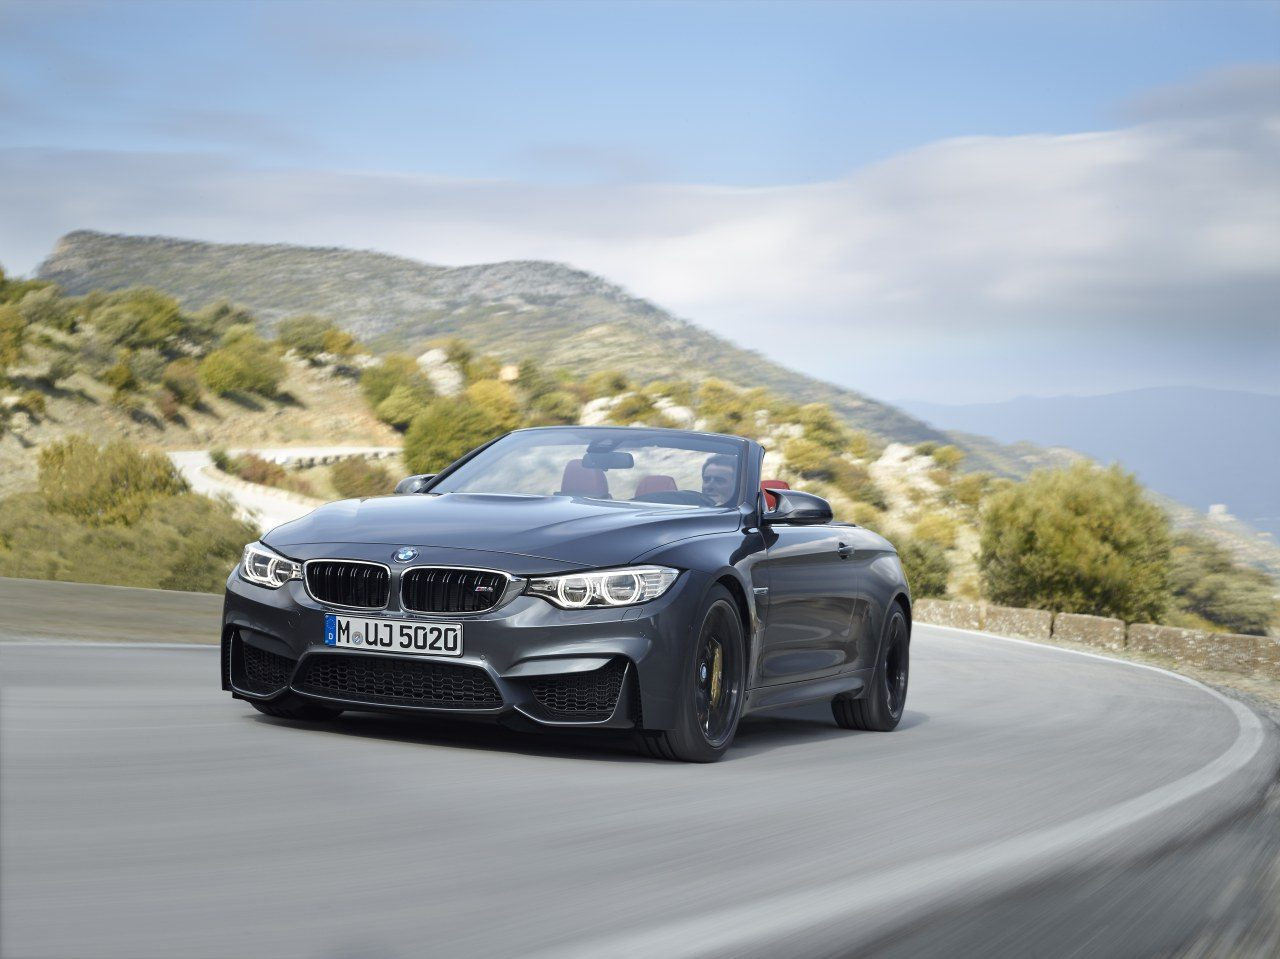 bmw m4 cabrio 2014 afbeeldingen. Black Bedroom Furniture Sets. Home Design Ideas